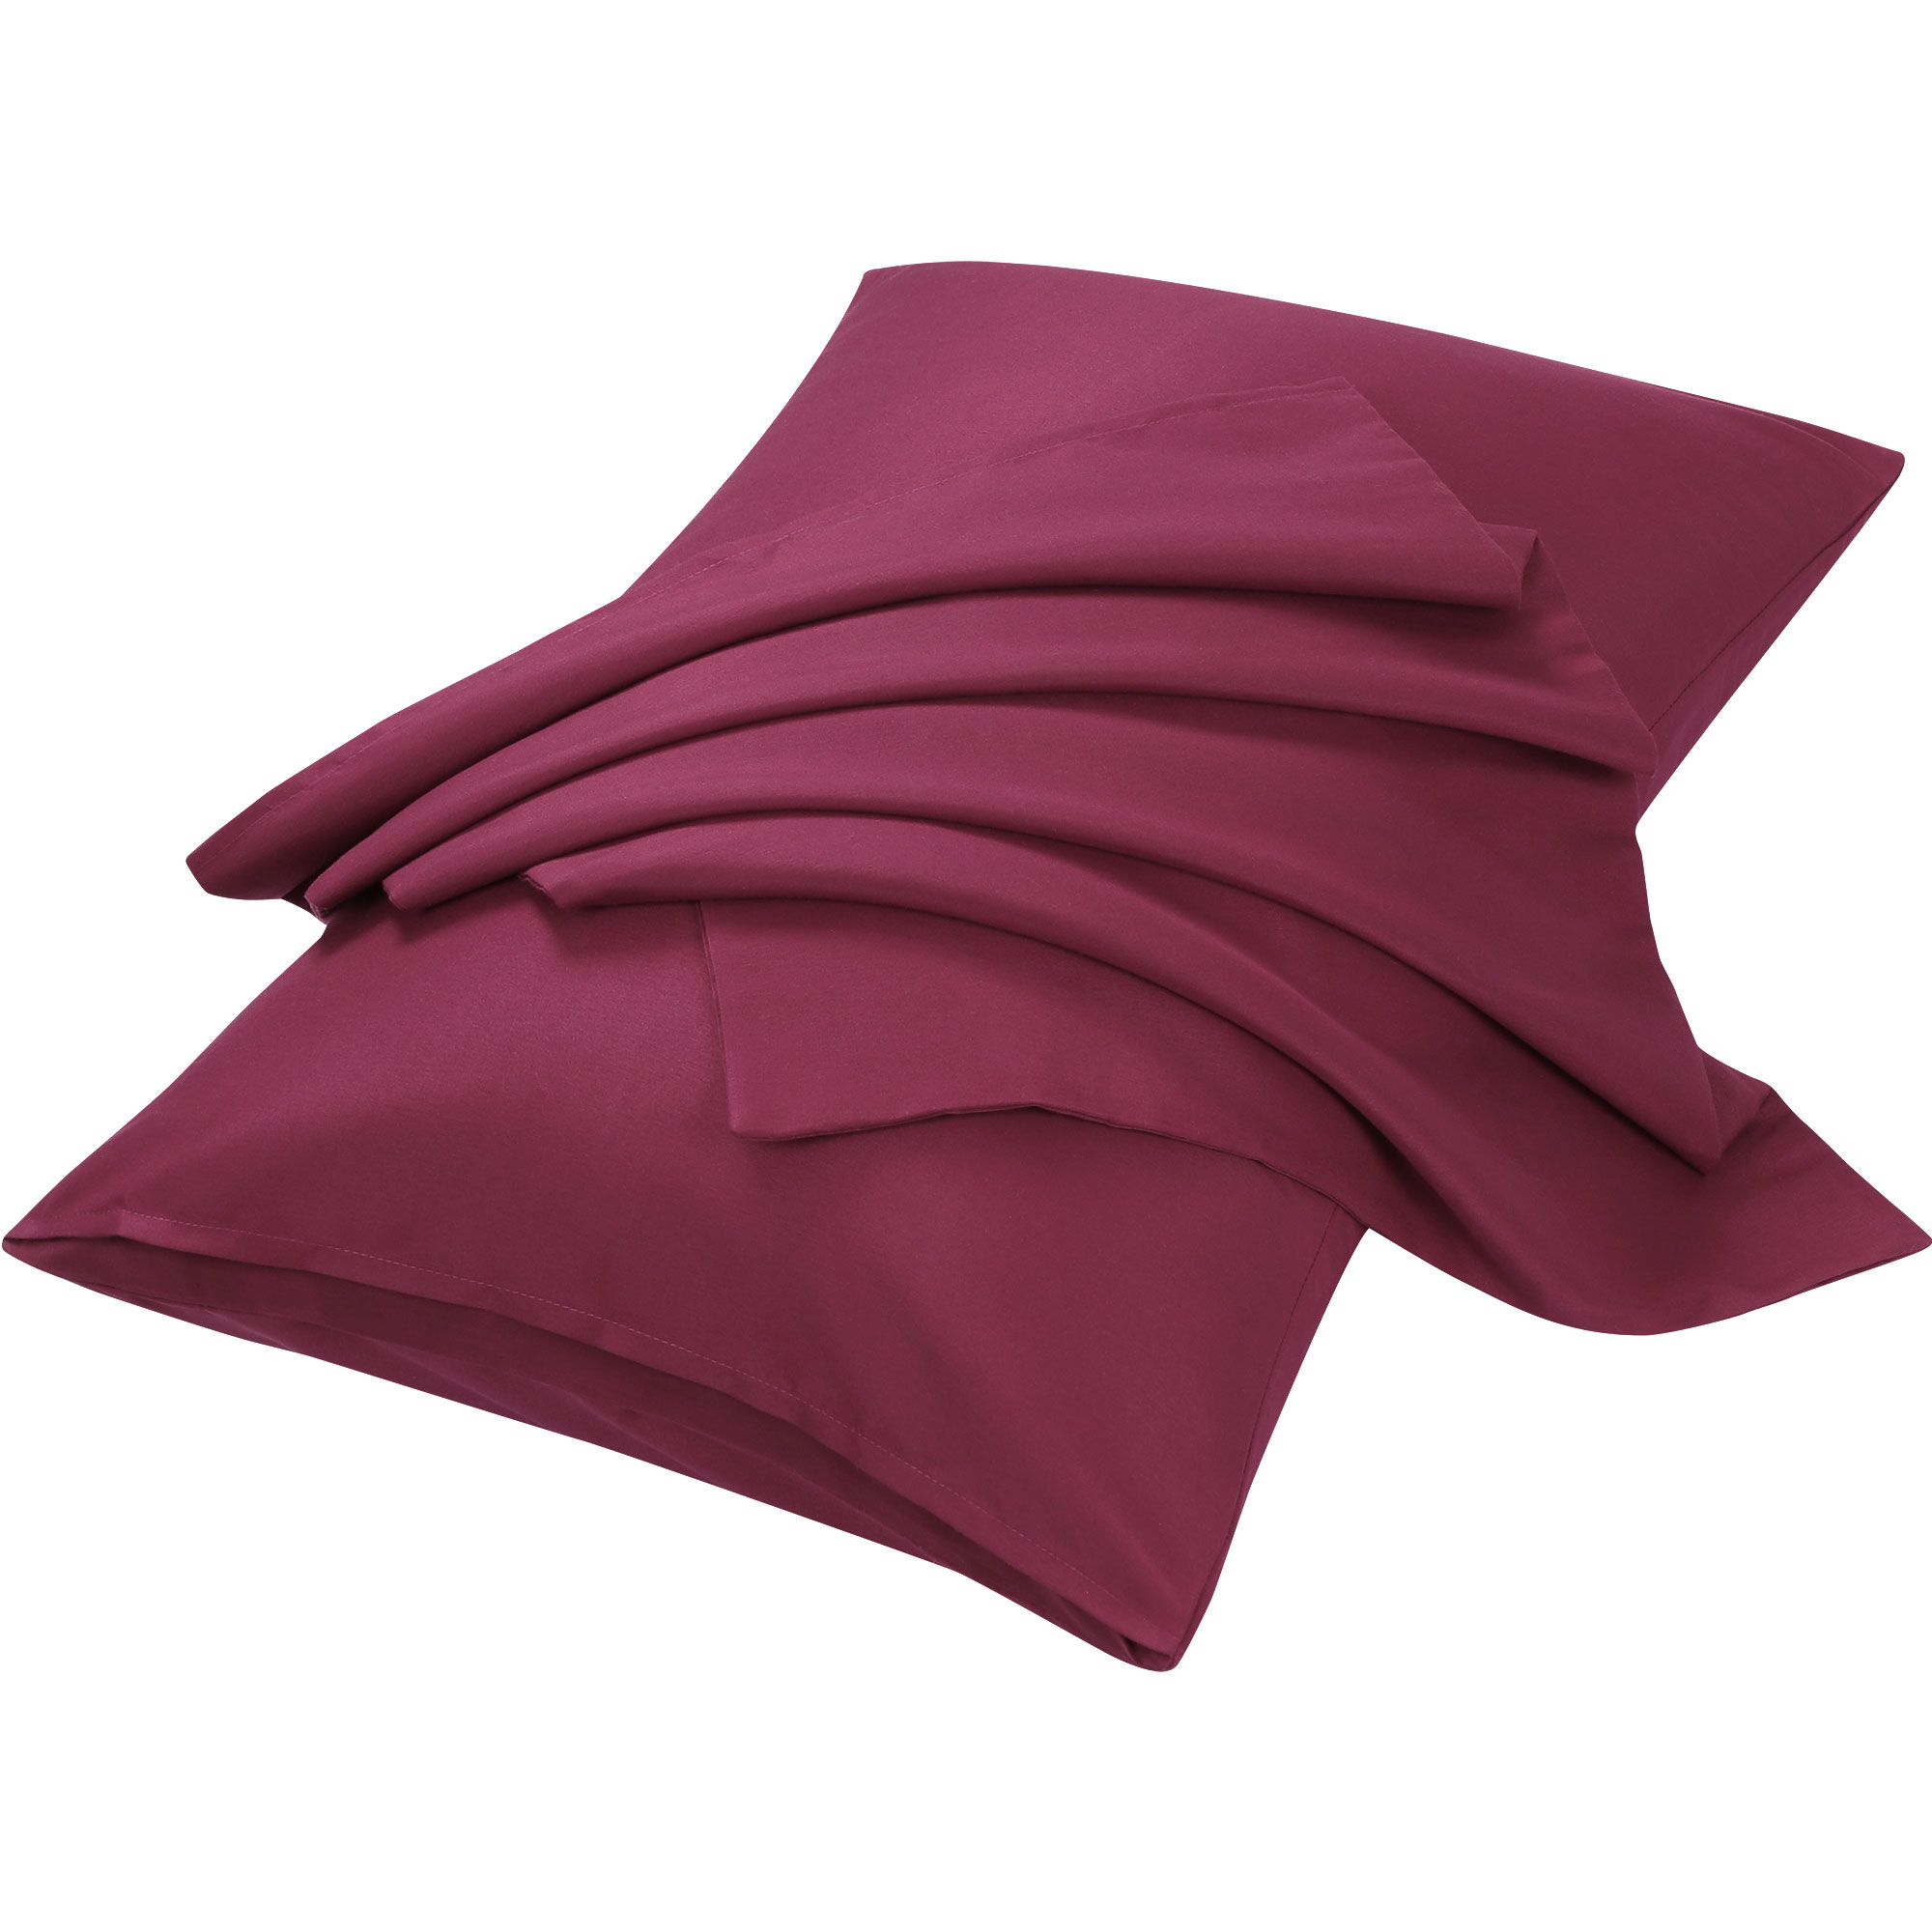 "2pcs Pillowcases Soft Microfiber, No Wrinkle, Wine King (20"" x 36"")"